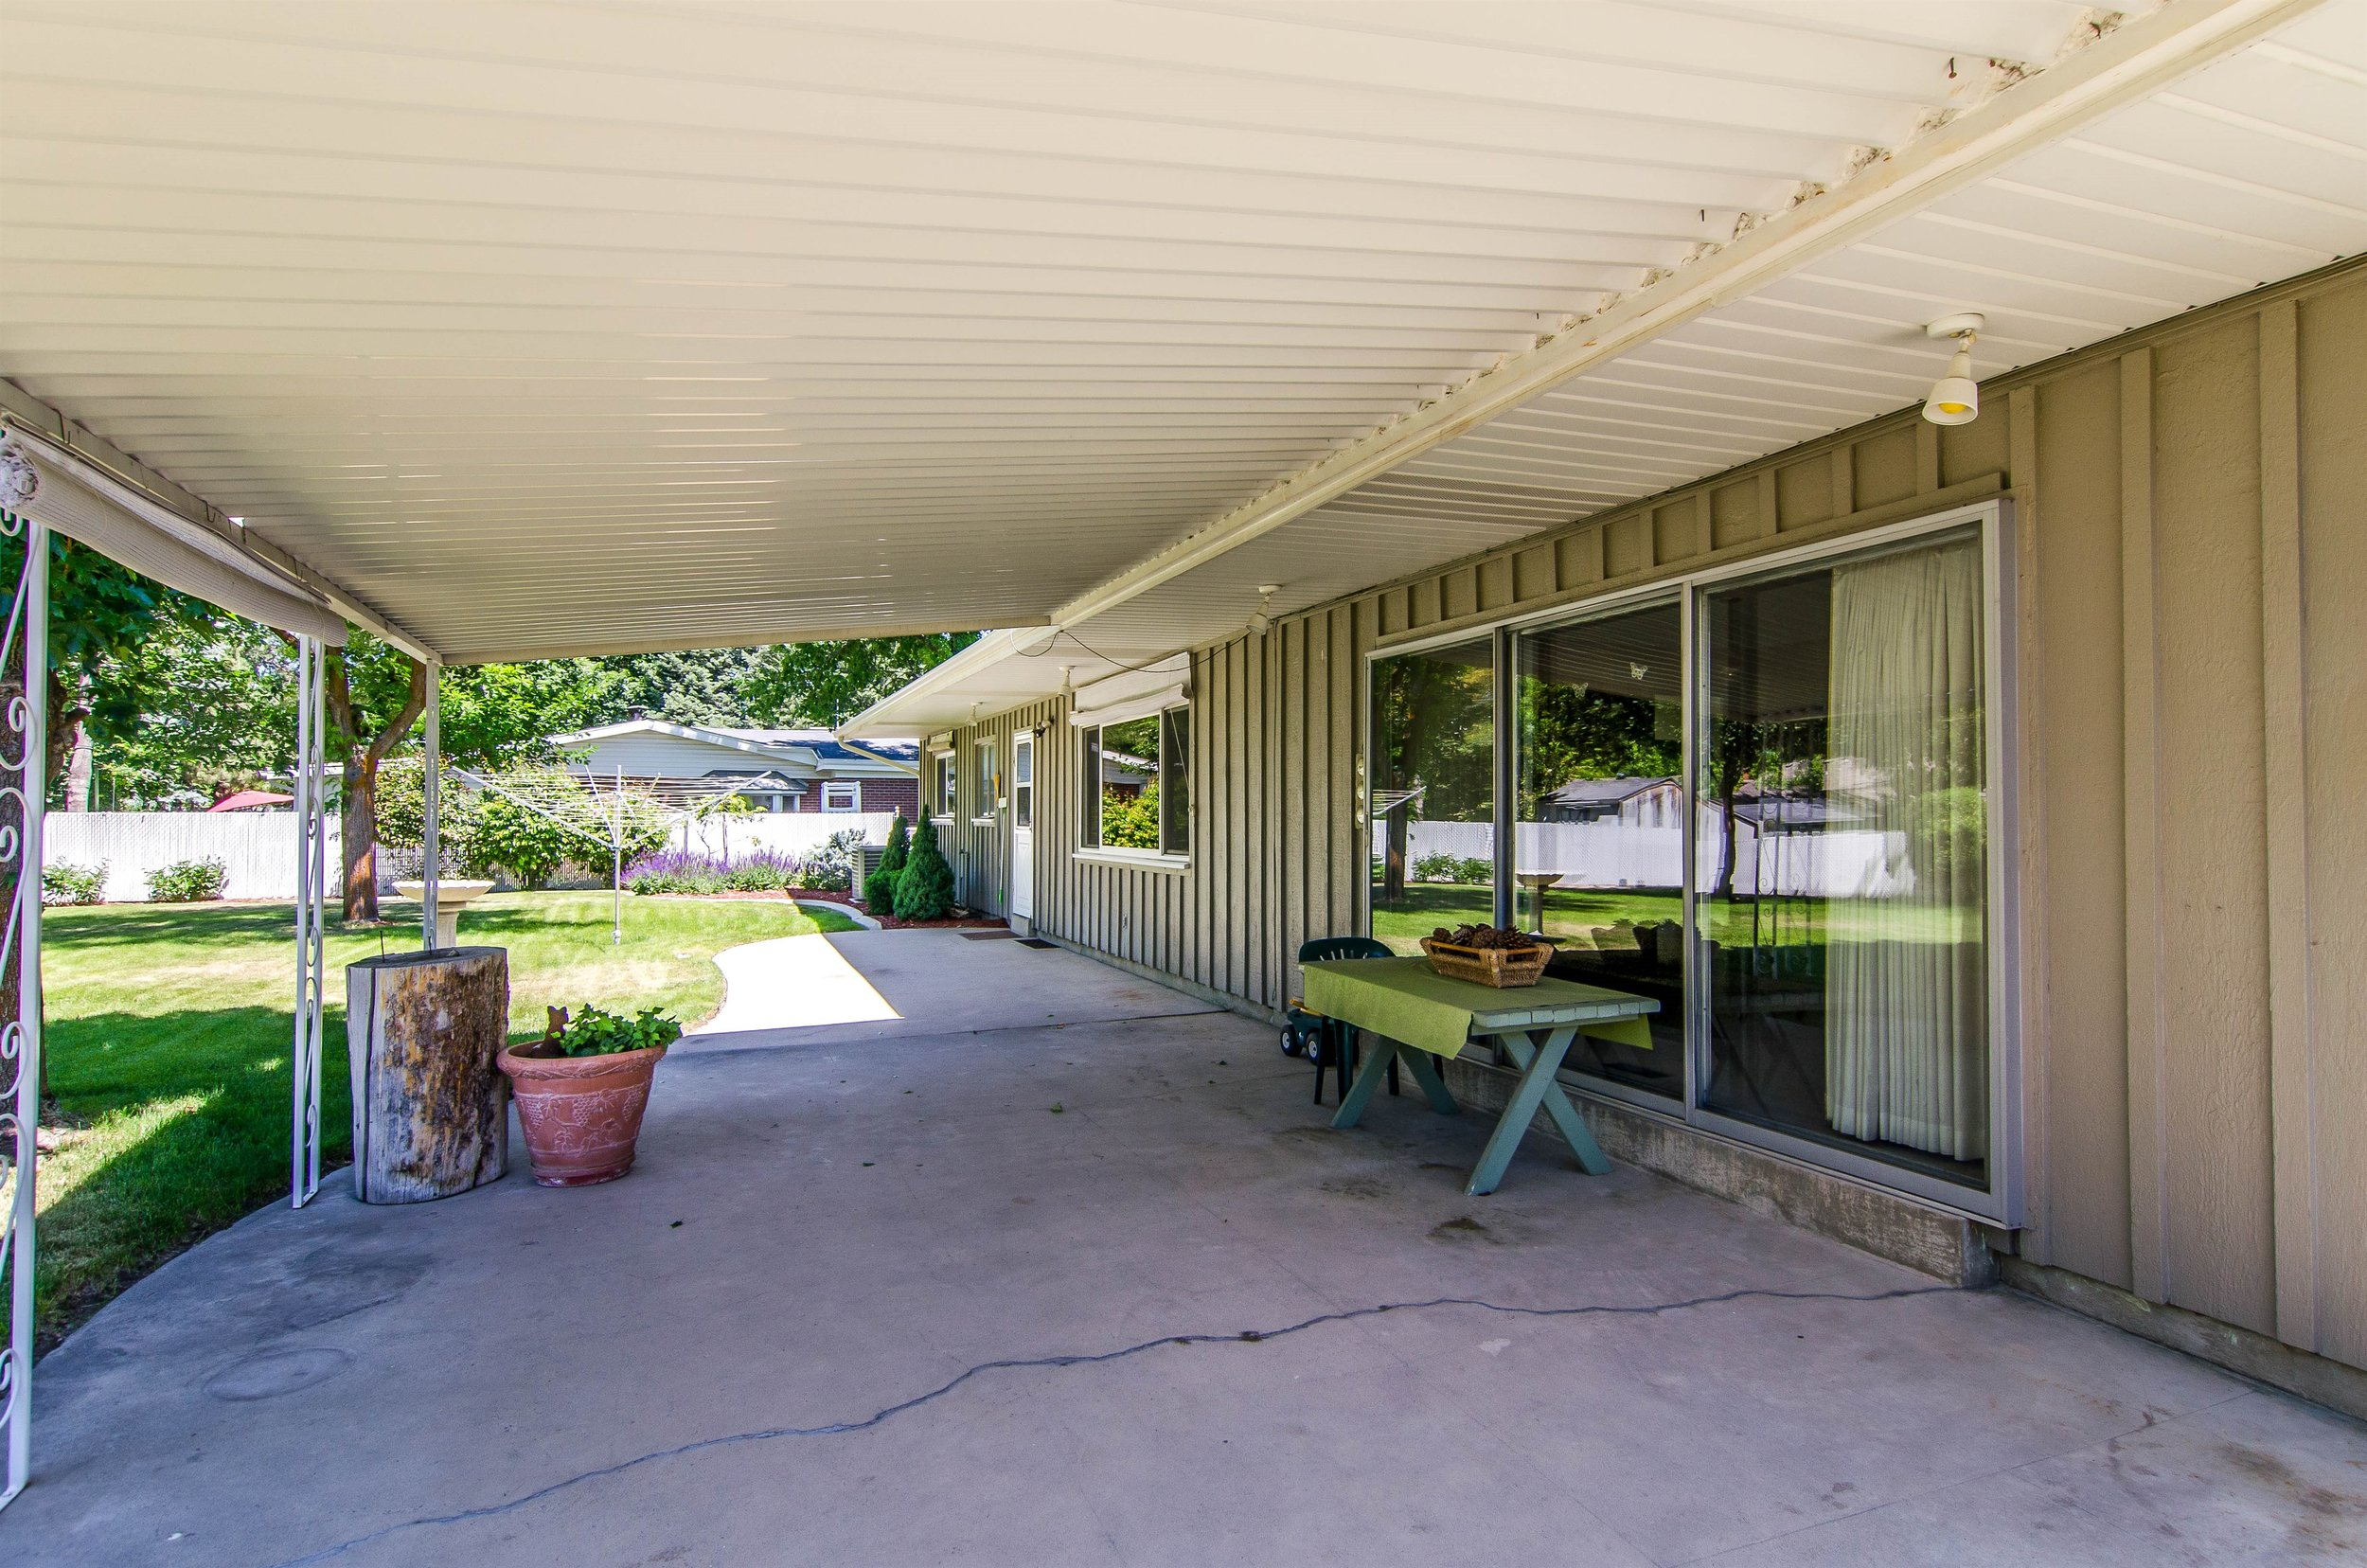 022_Covered Patio.jpg